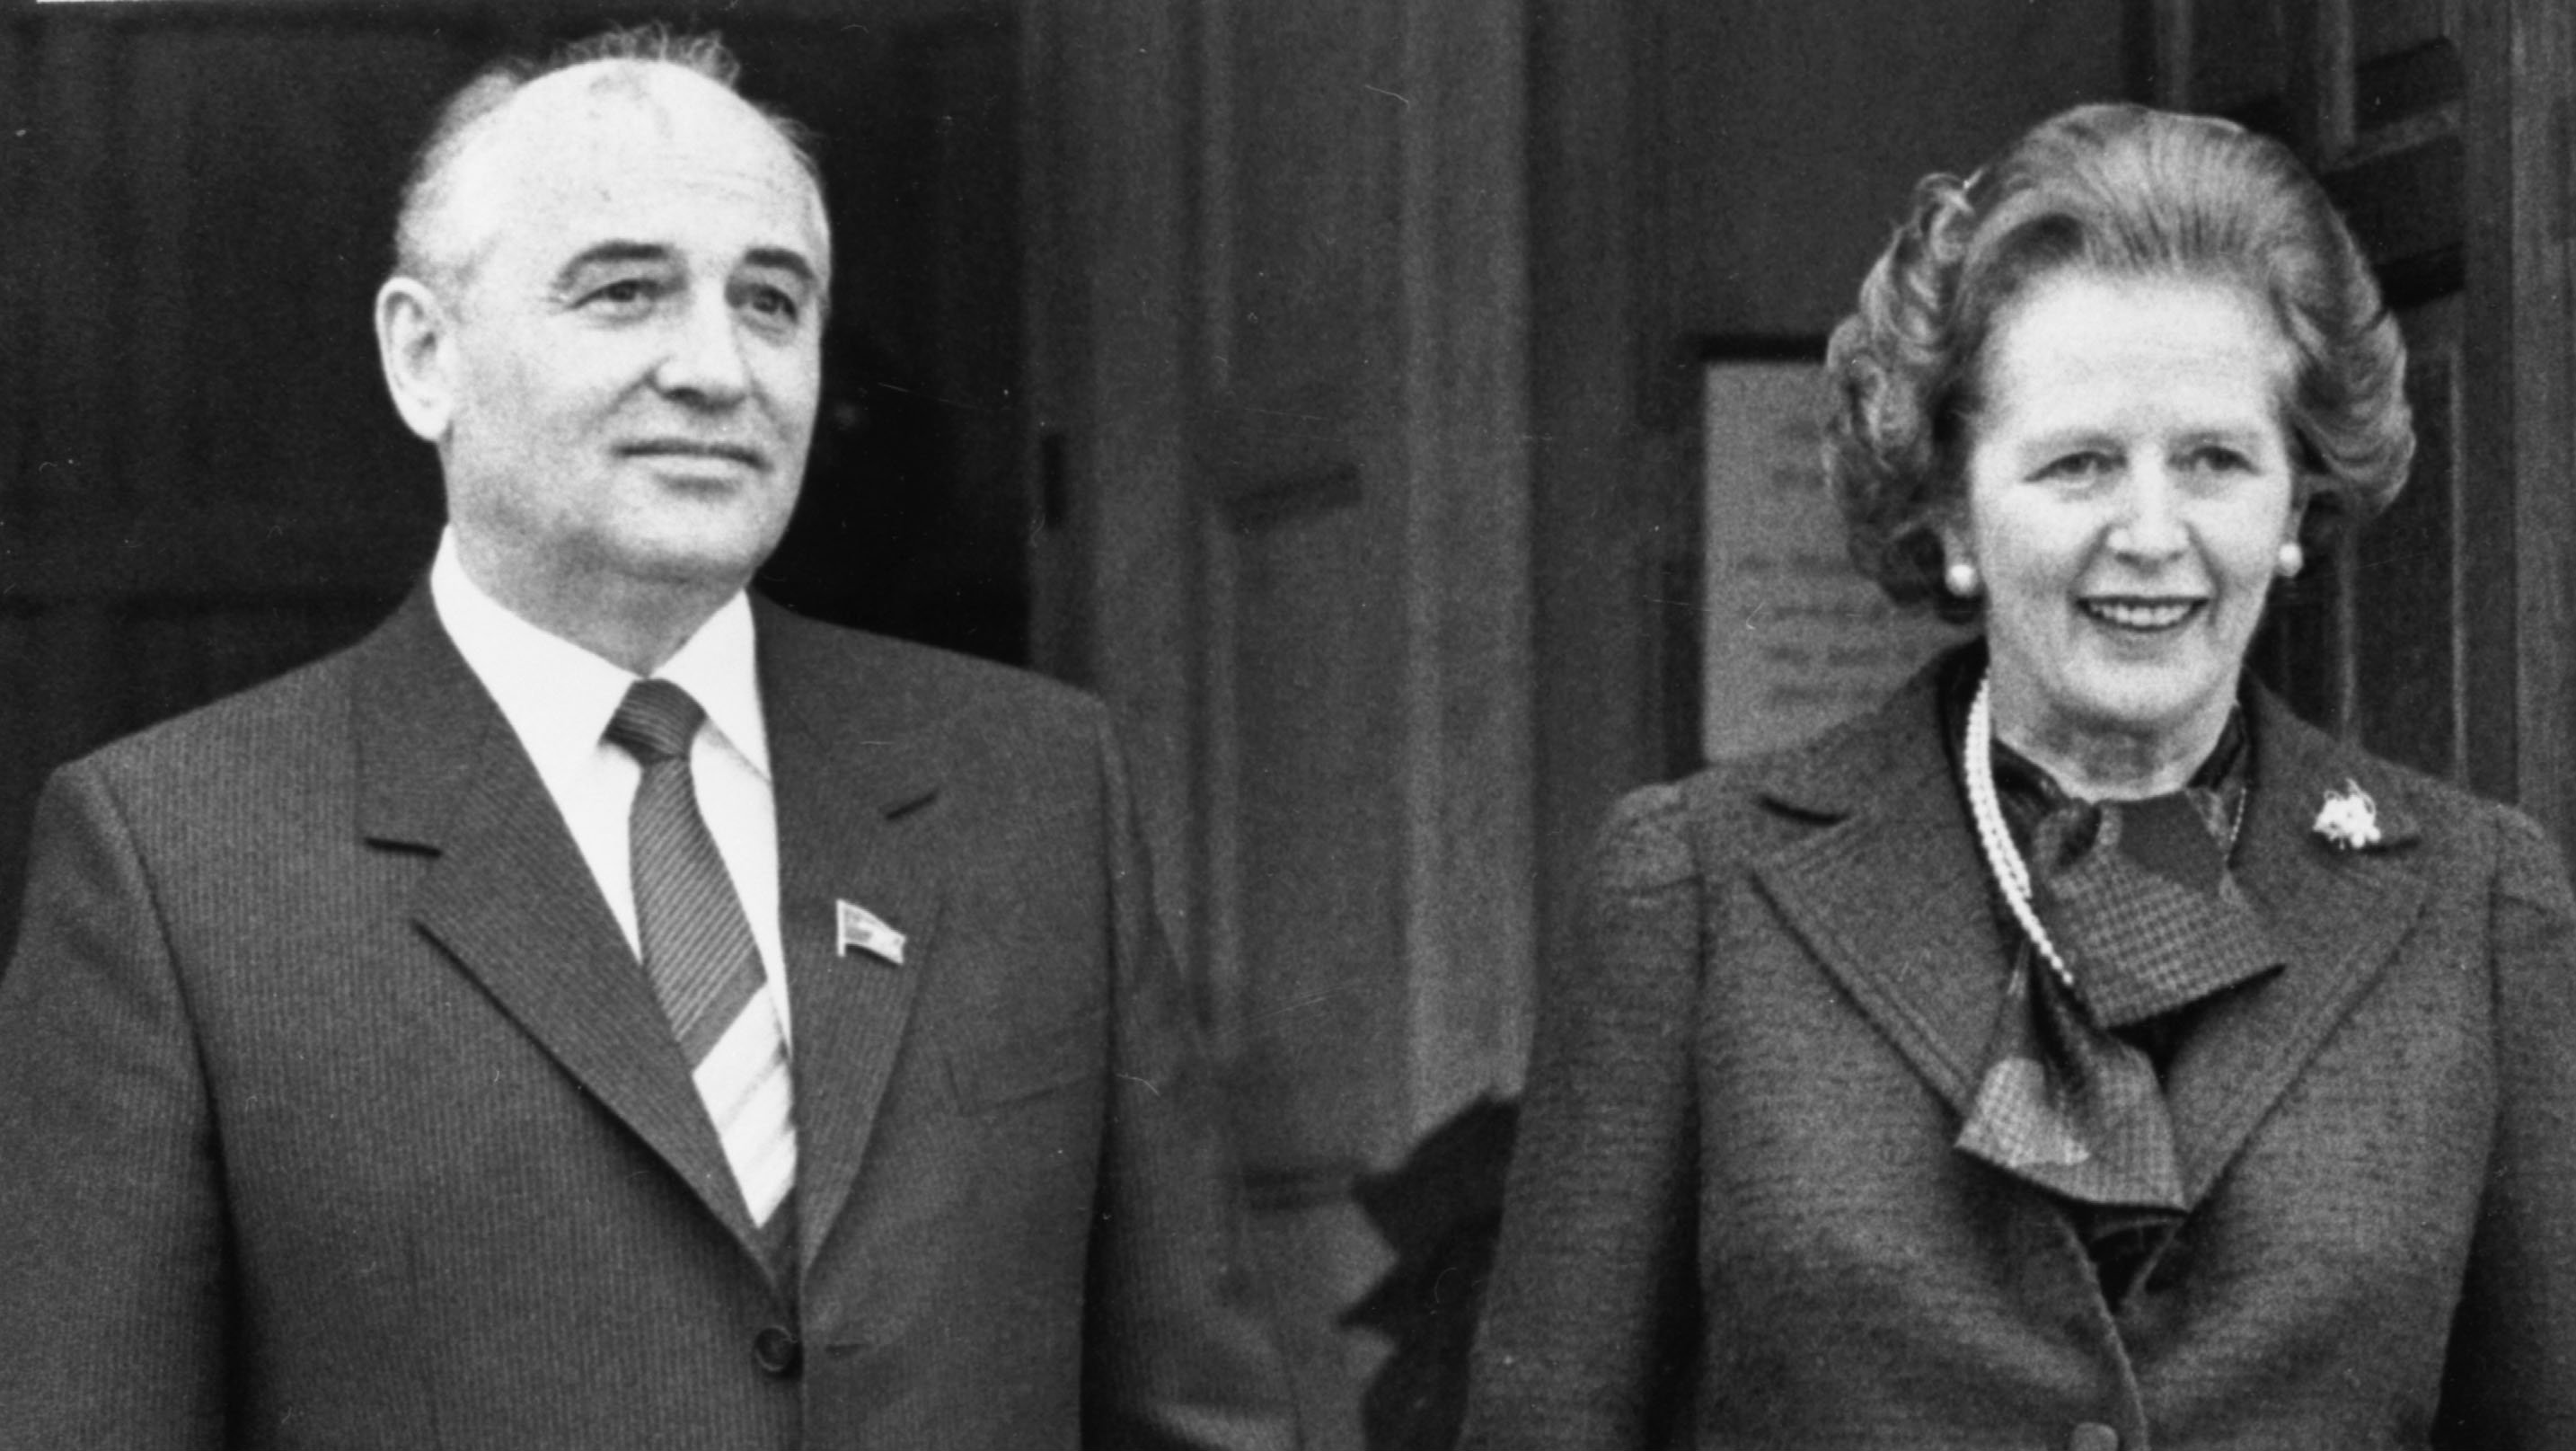 Former British Prime Minister Margaret Thatcher and Soviet leader-to-be Mikhail Gorbachev in 1984